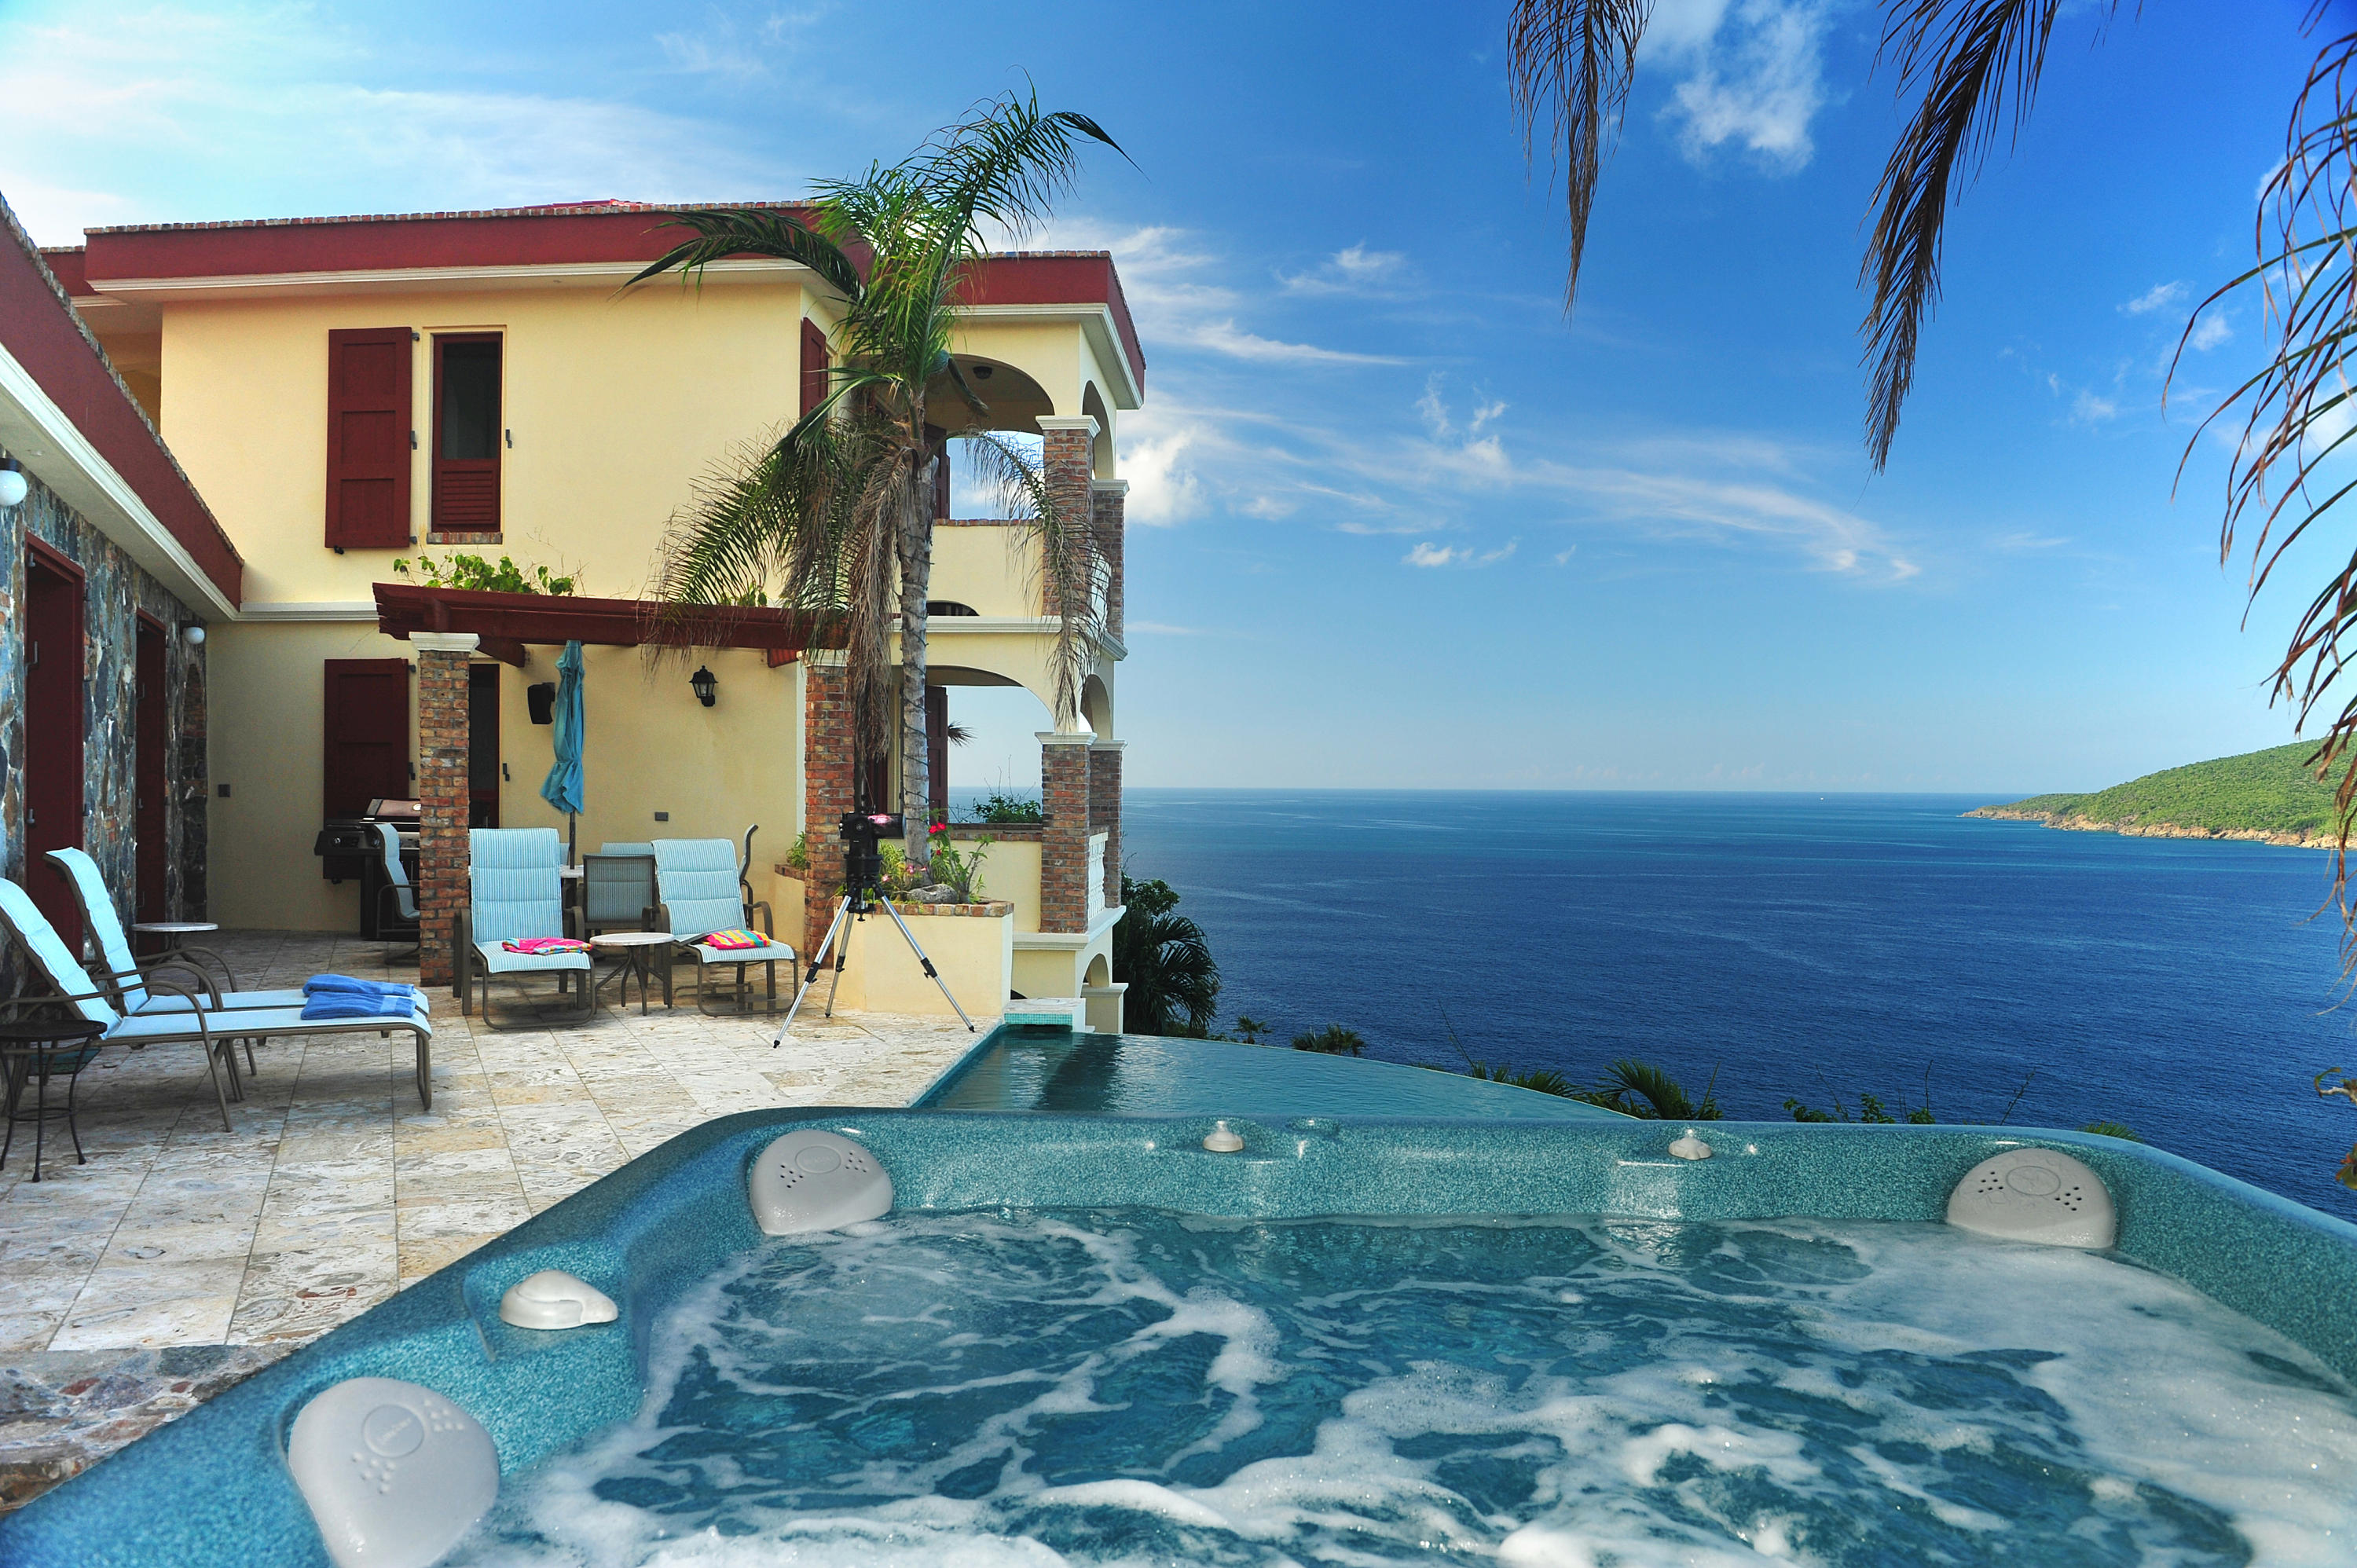 Jacuzzi with View